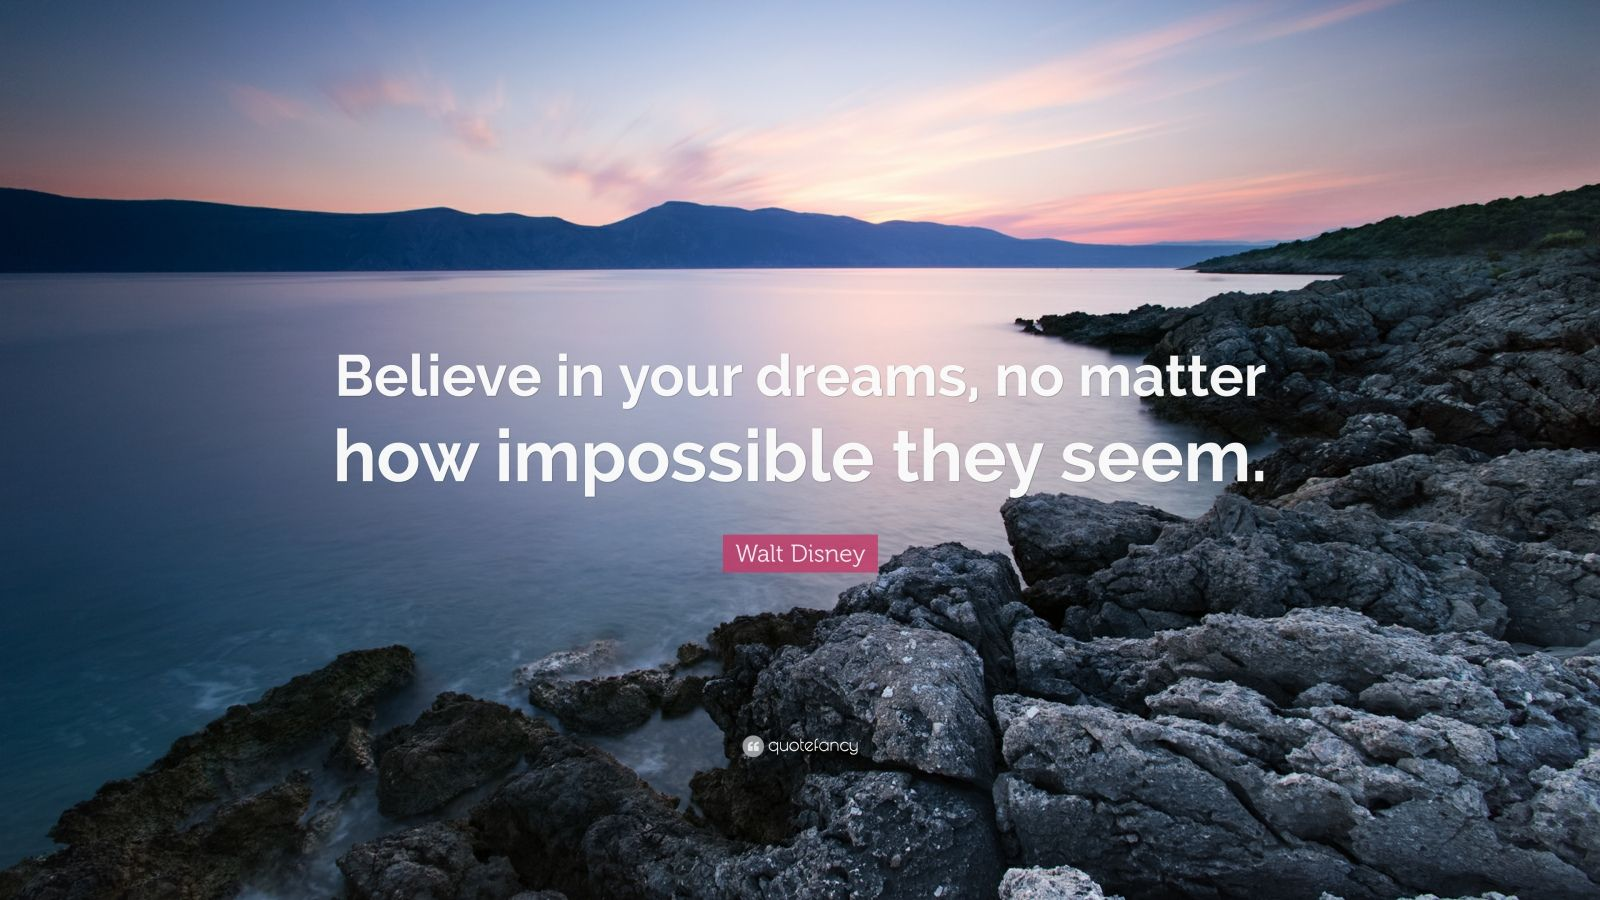 "Quotes About Believing: ""Believe in your dreams, no matter how impossible they seem."" — Walt Disney"